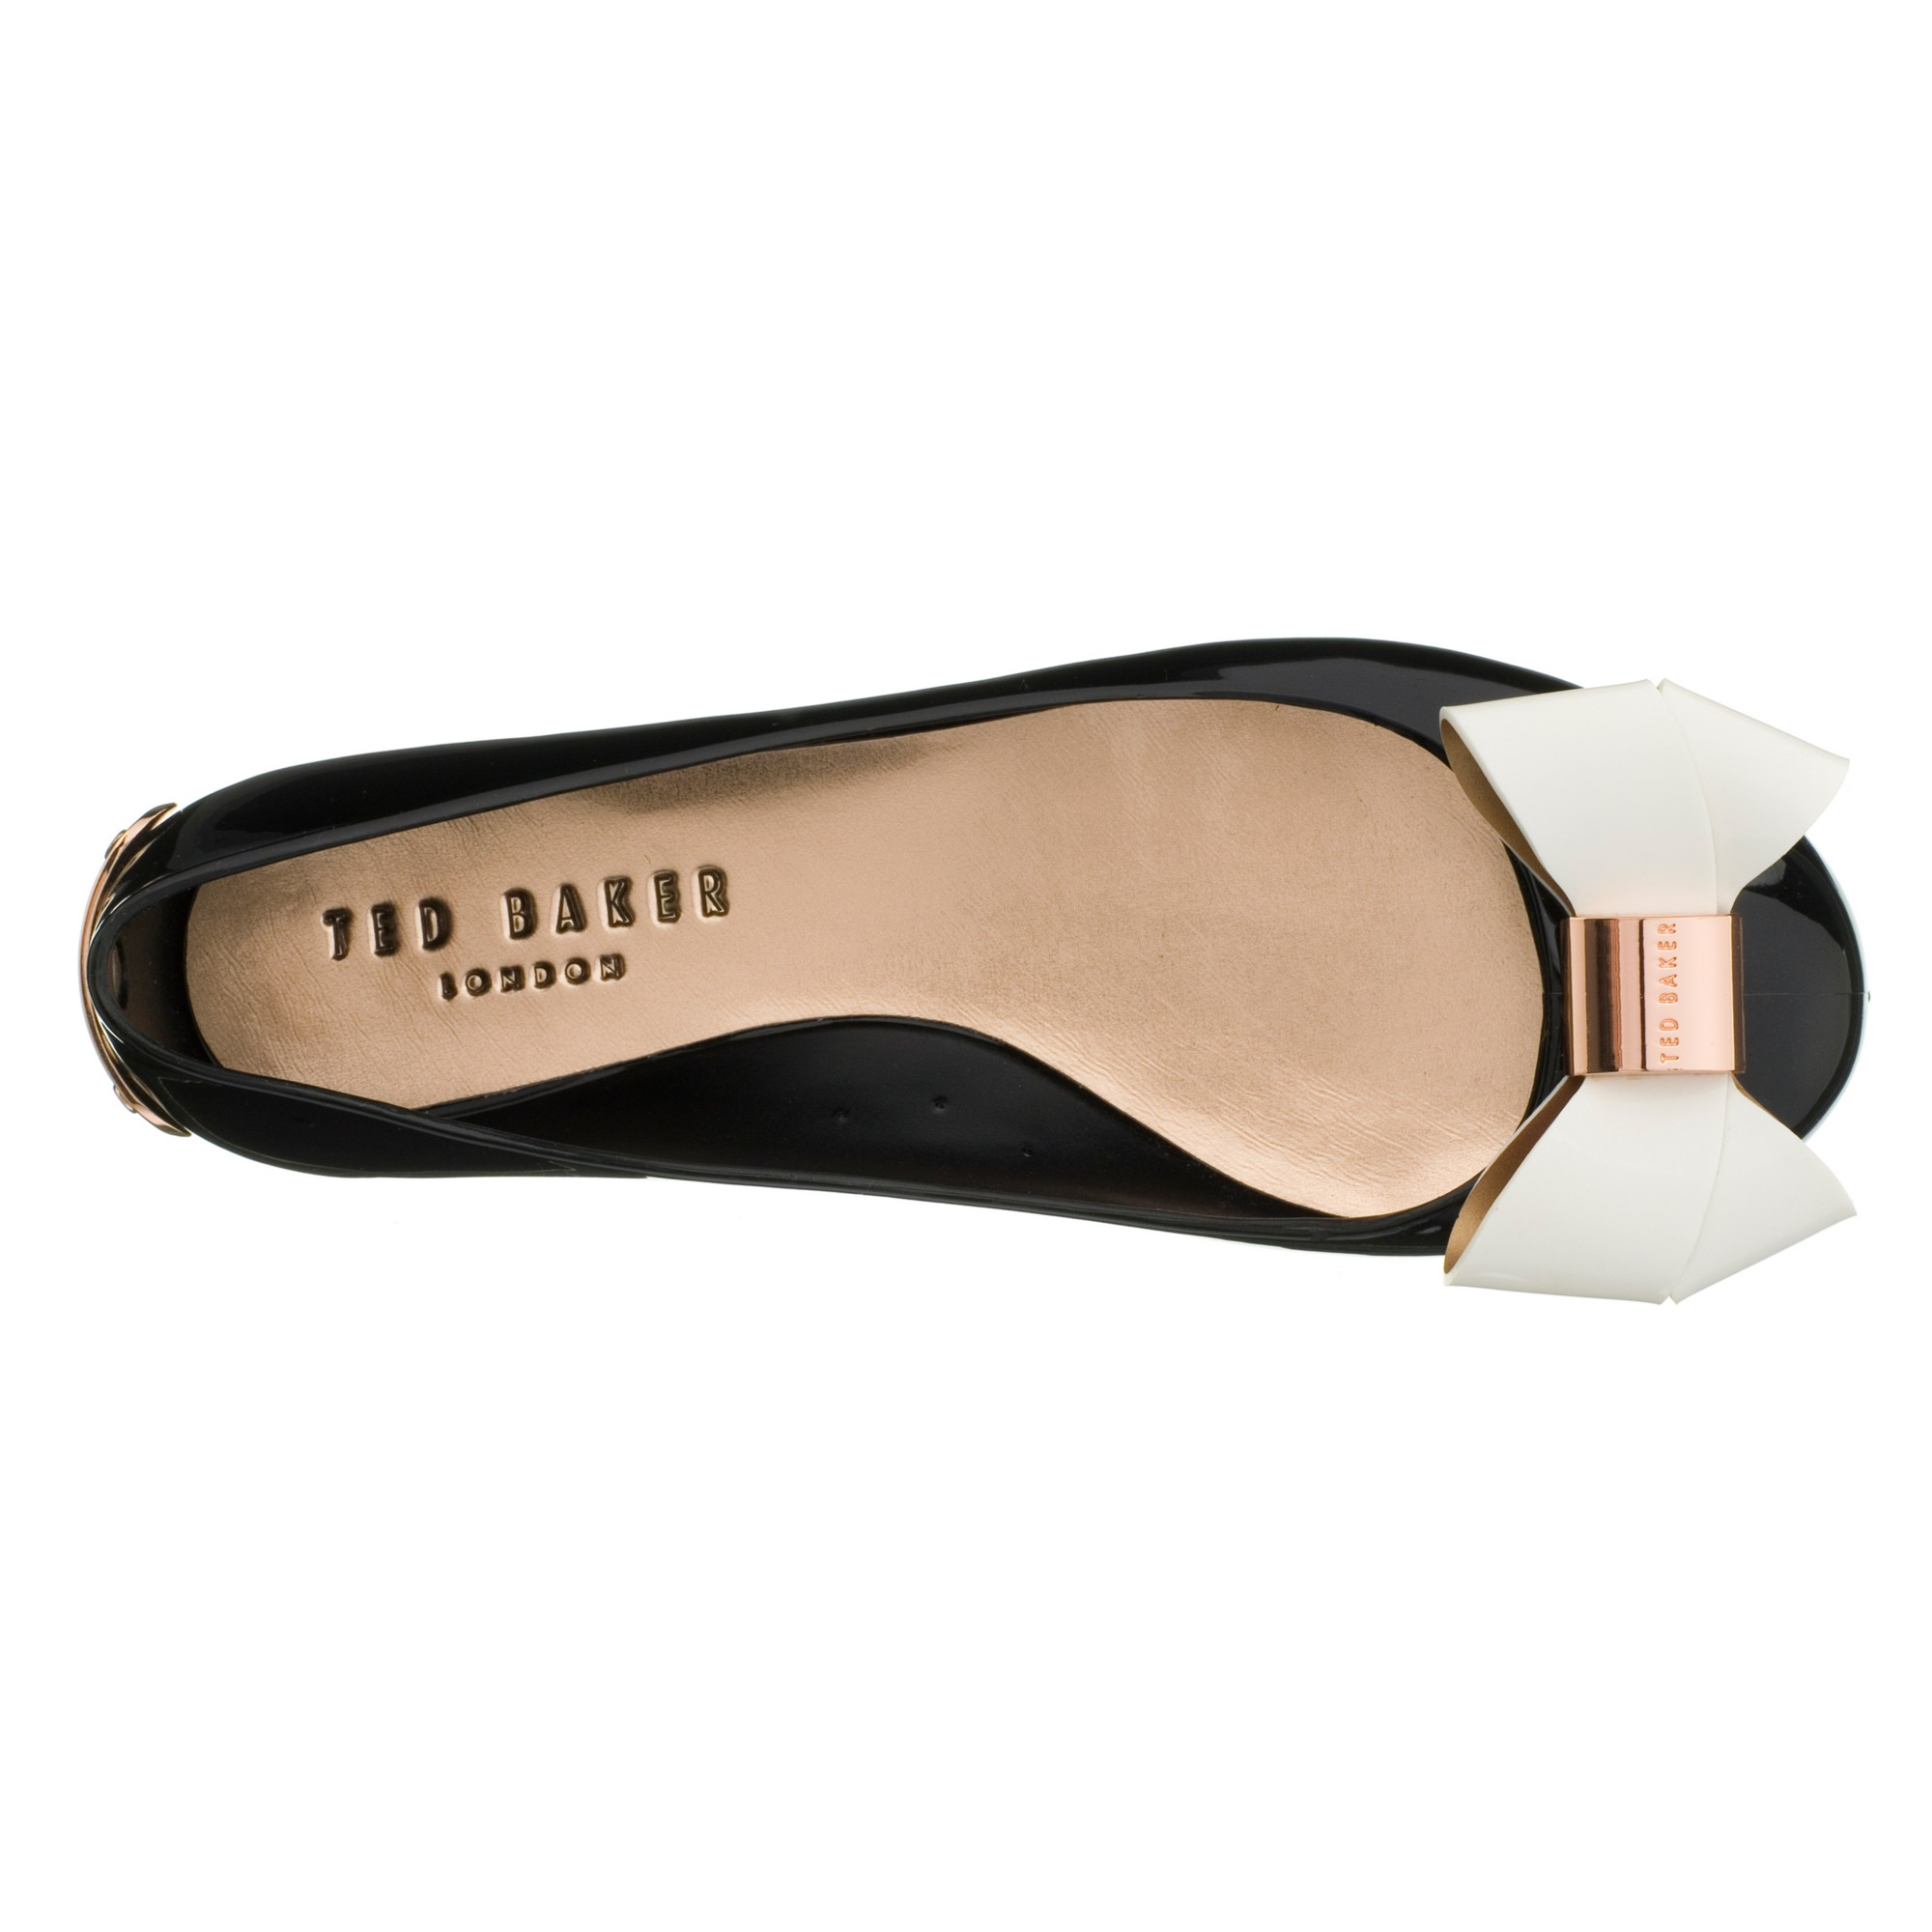 8f07e4cbfd19 Ted Baker Faiyte Large Bow Jelly Flat Pumps in Black - Lyst